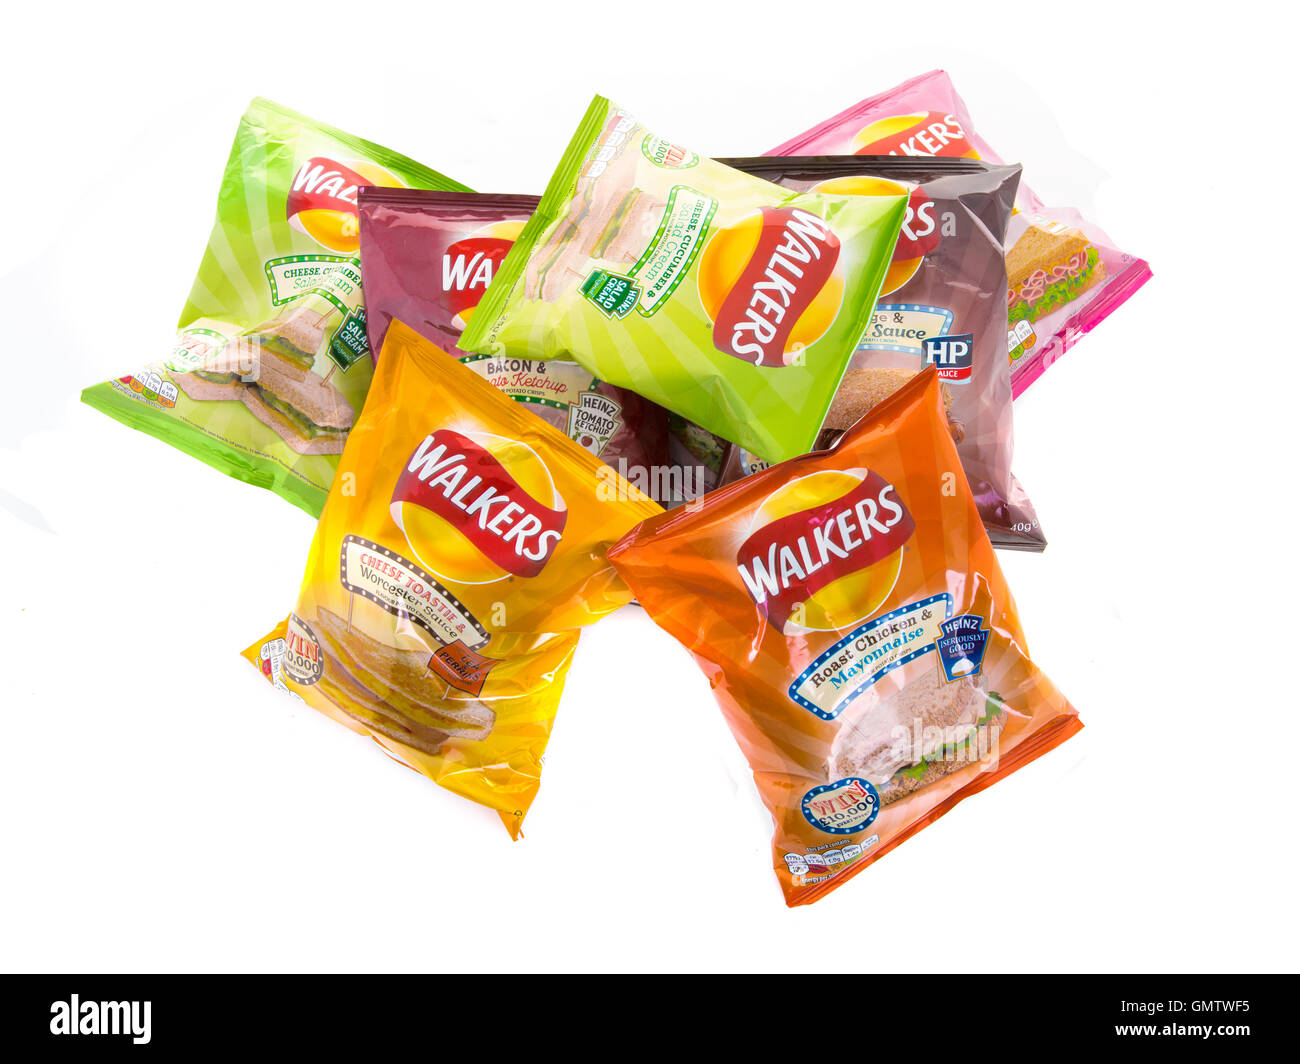 Bags of Walkers new Flavour crisps isolated on a white background. Walkers is a British snack food manufacture, - Stock Image